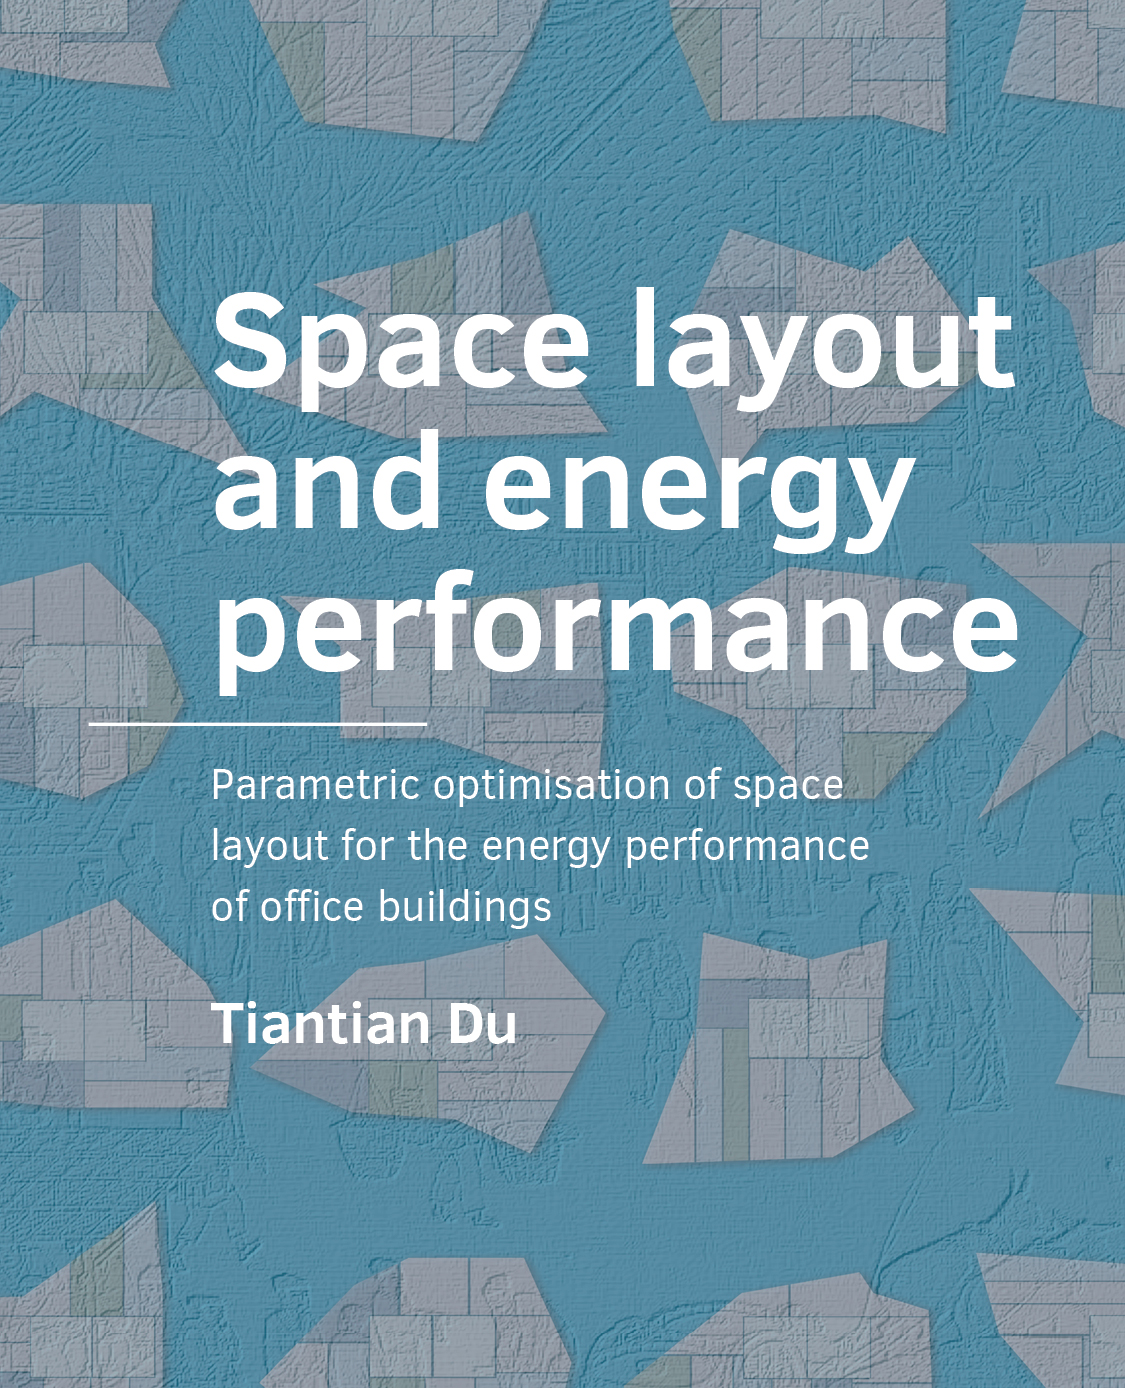 Cover book: Space layout and energy performance